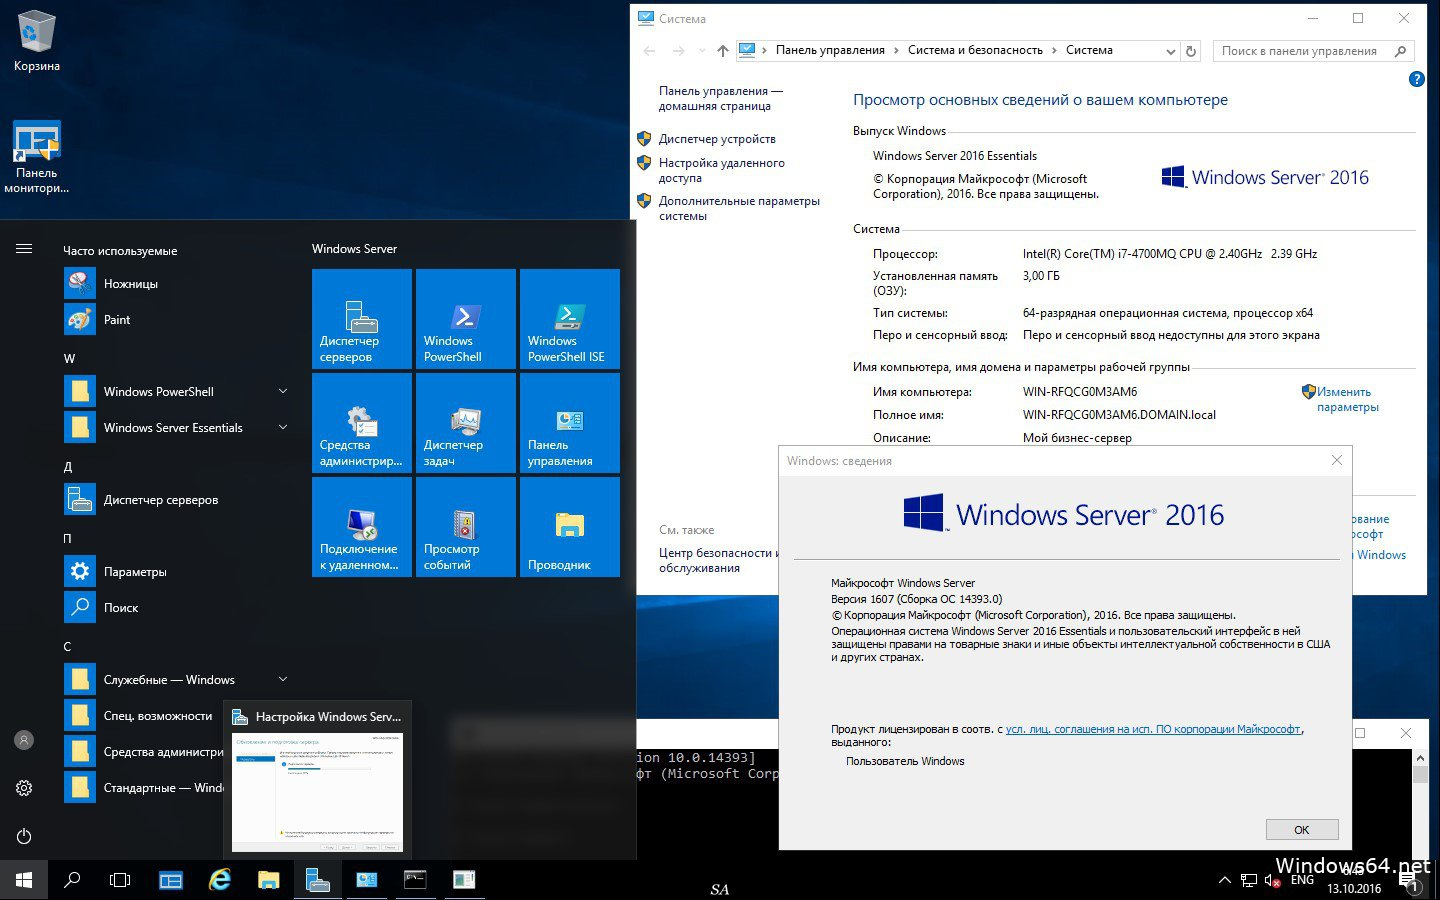 скачать Windows Server 2016 r2 x64 rus торрент c ключом